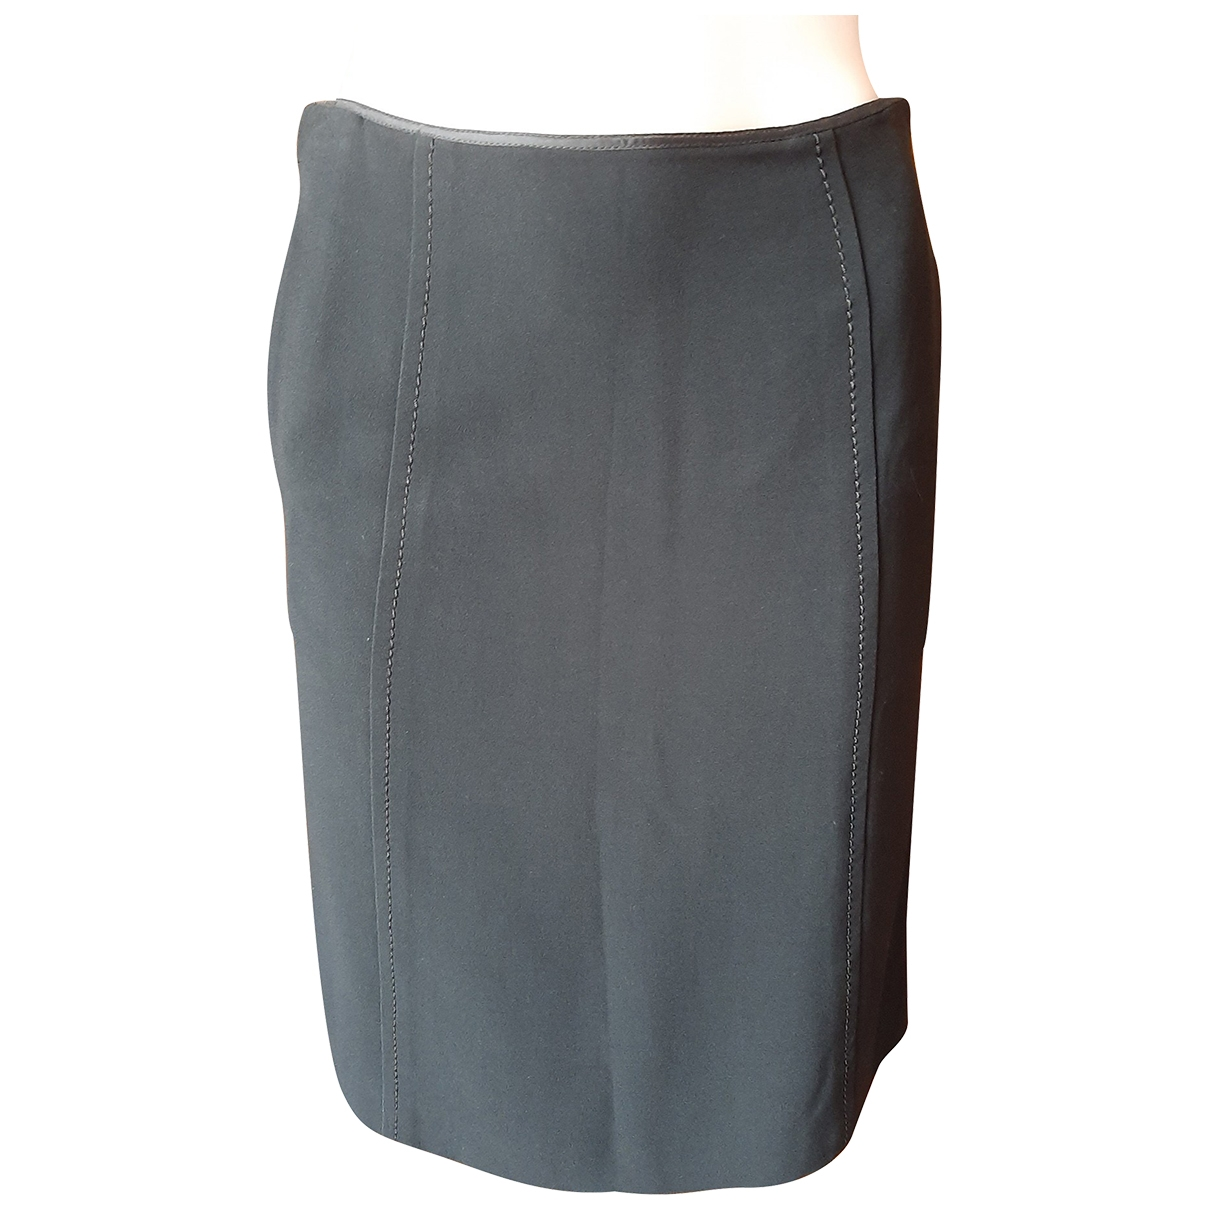 Prada \N Black skirt for Women 38 FR